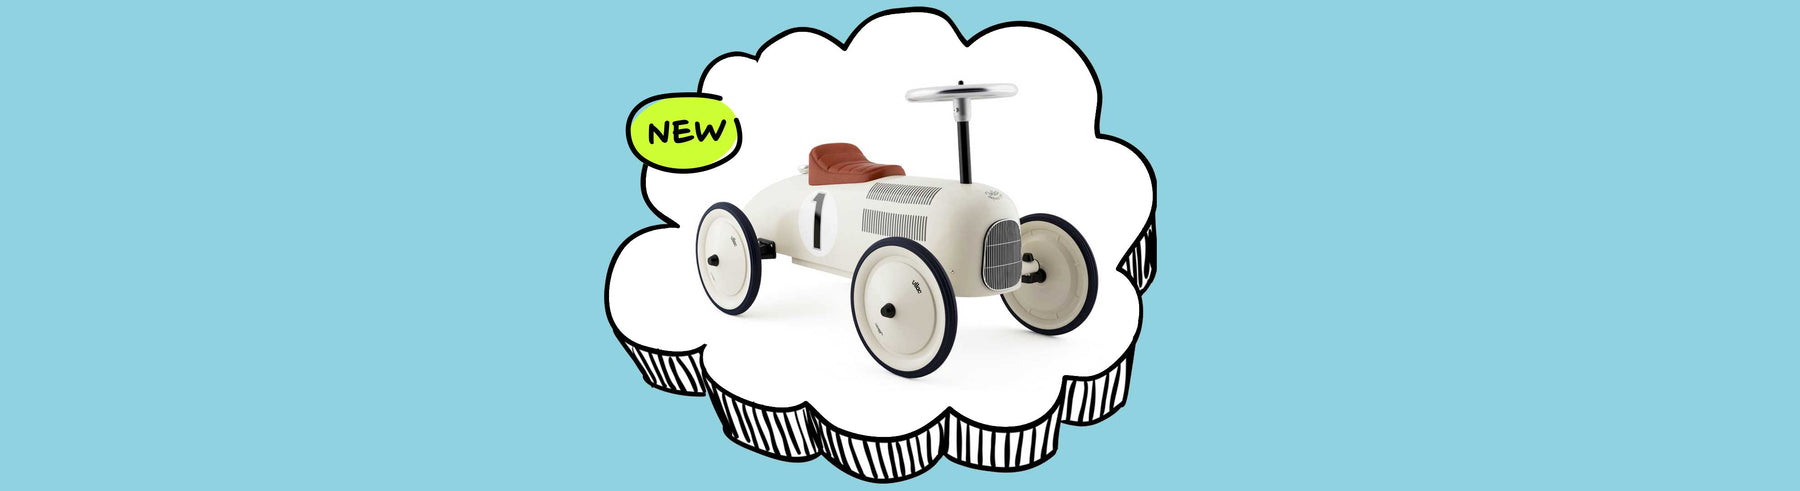 Kids Classic Vintage Racer Metal Ride On Push Car